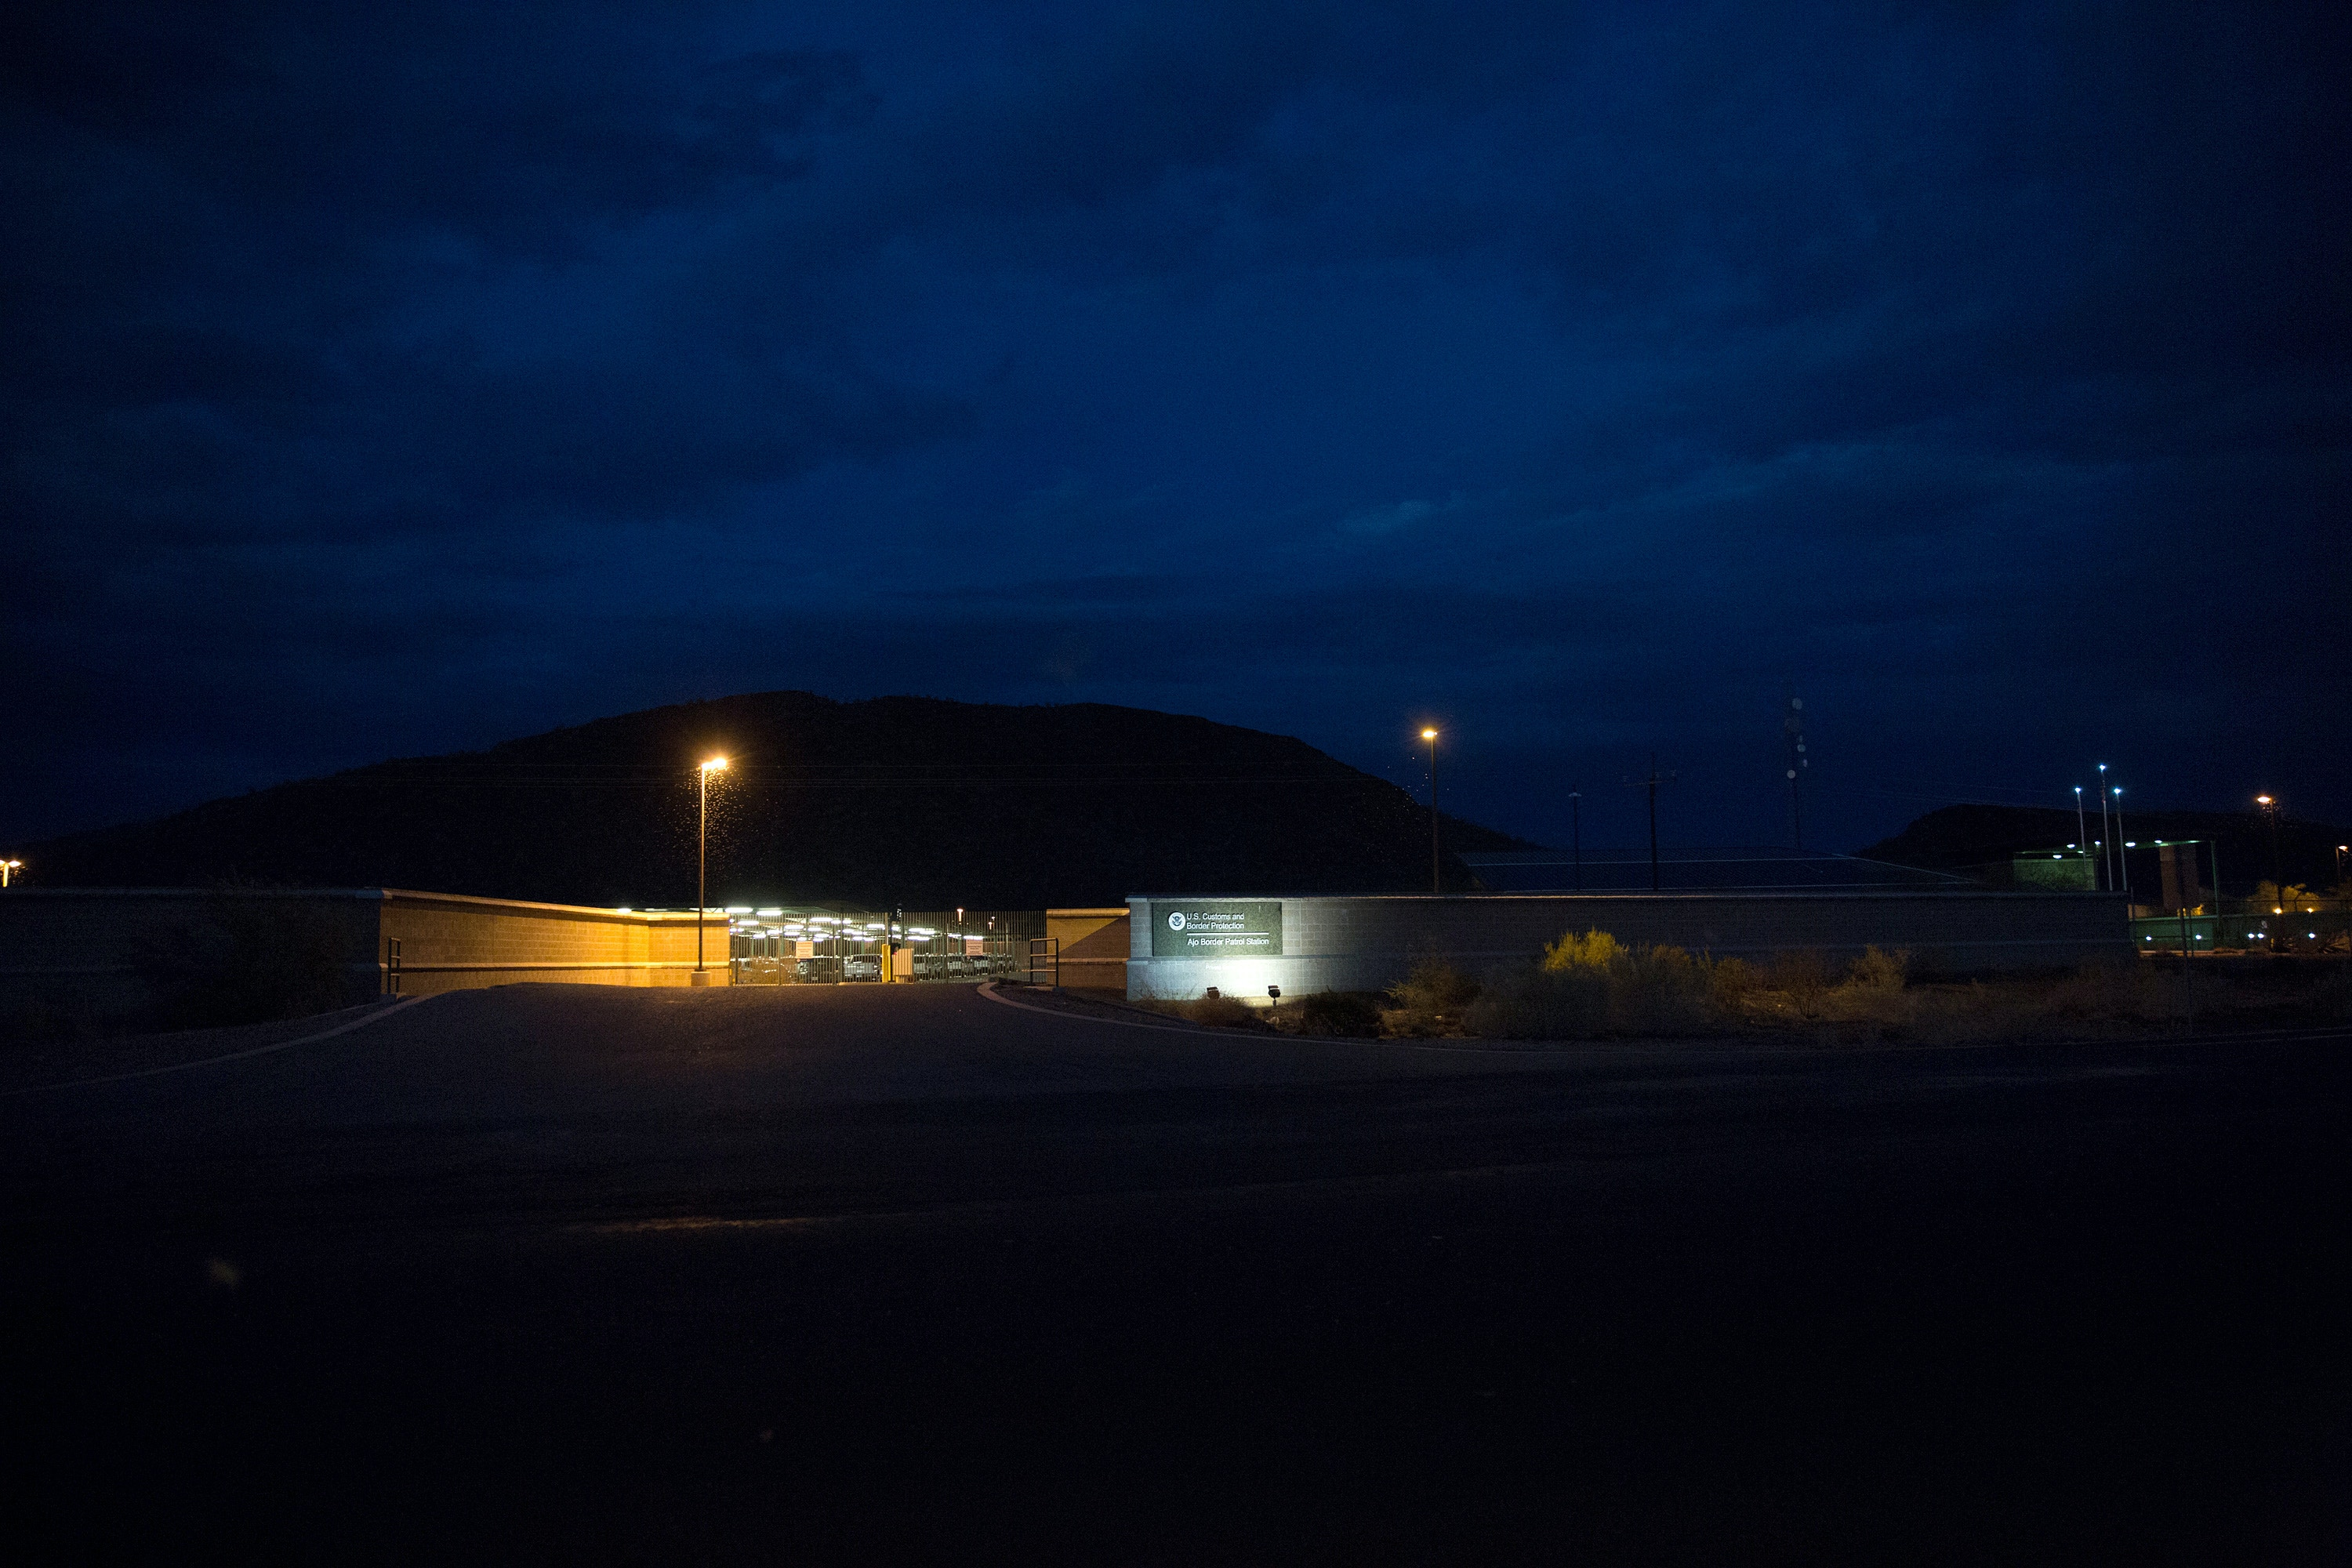 CBP border patrol station where Dr. Warren was held in custody after his arrest.